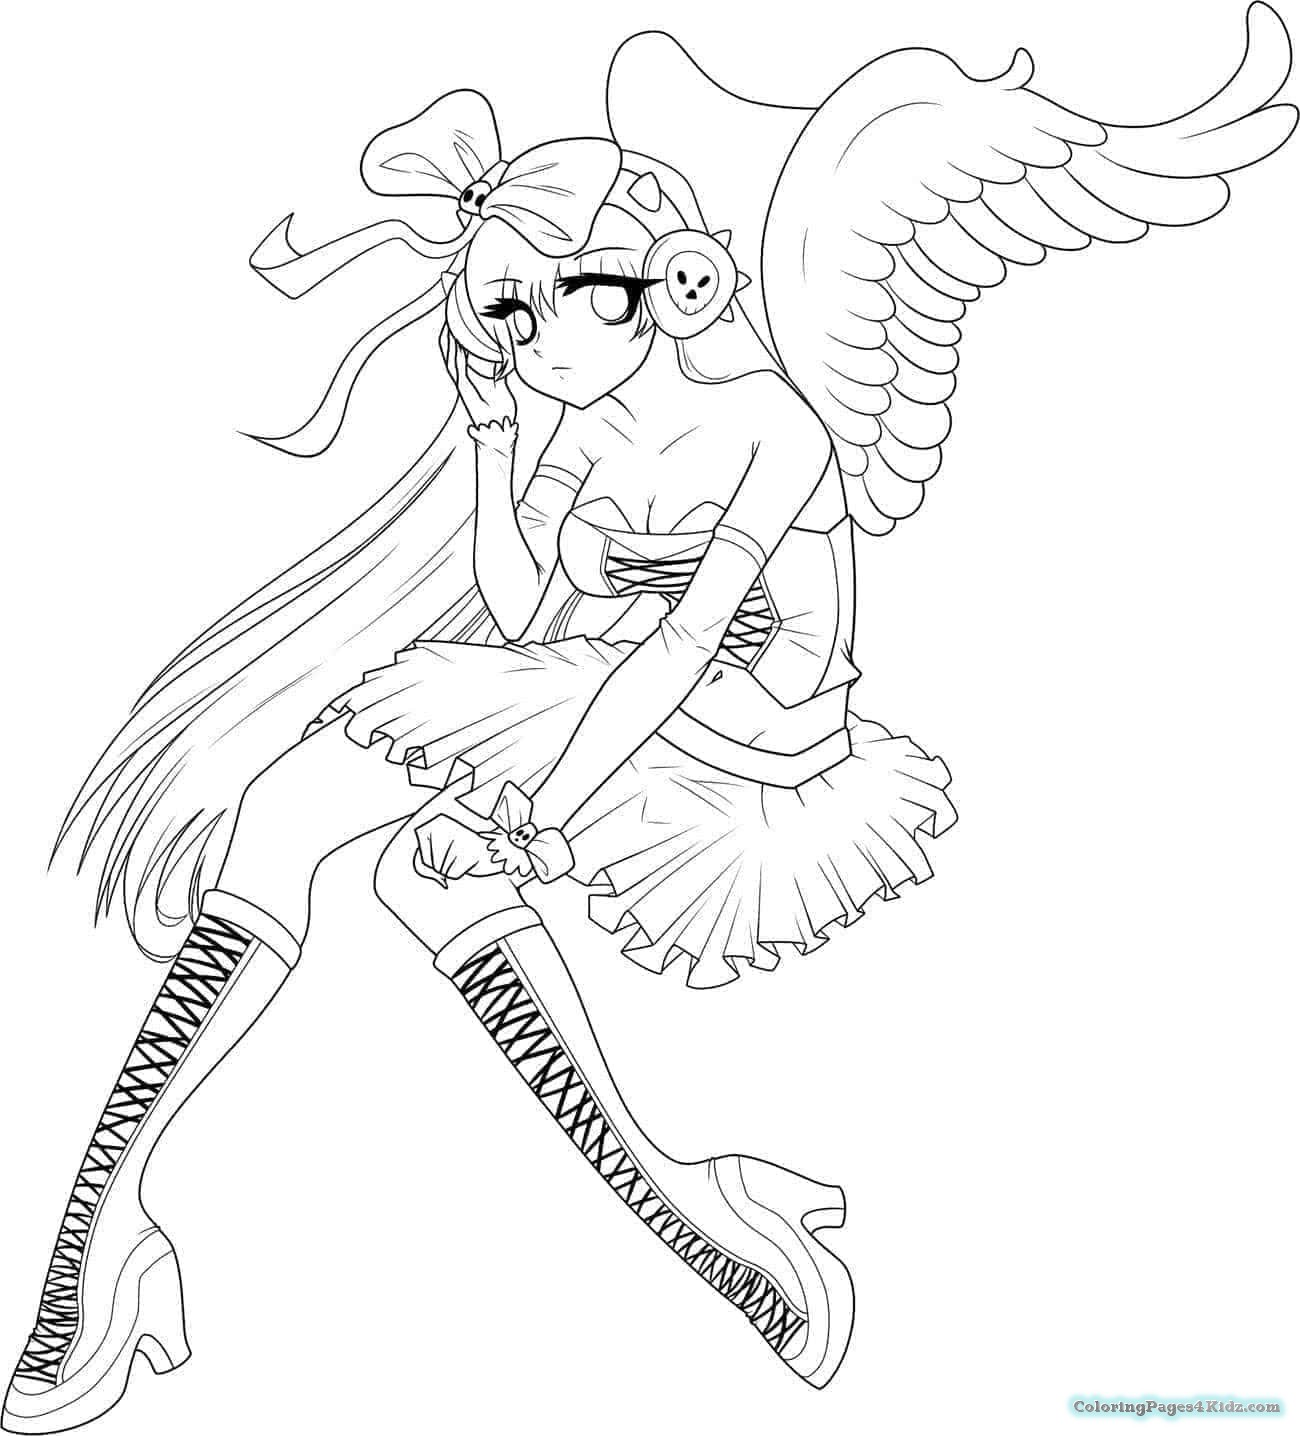 1300x1436 Angel And Devil Anime Coloring Pages Coloring Pages For Kids